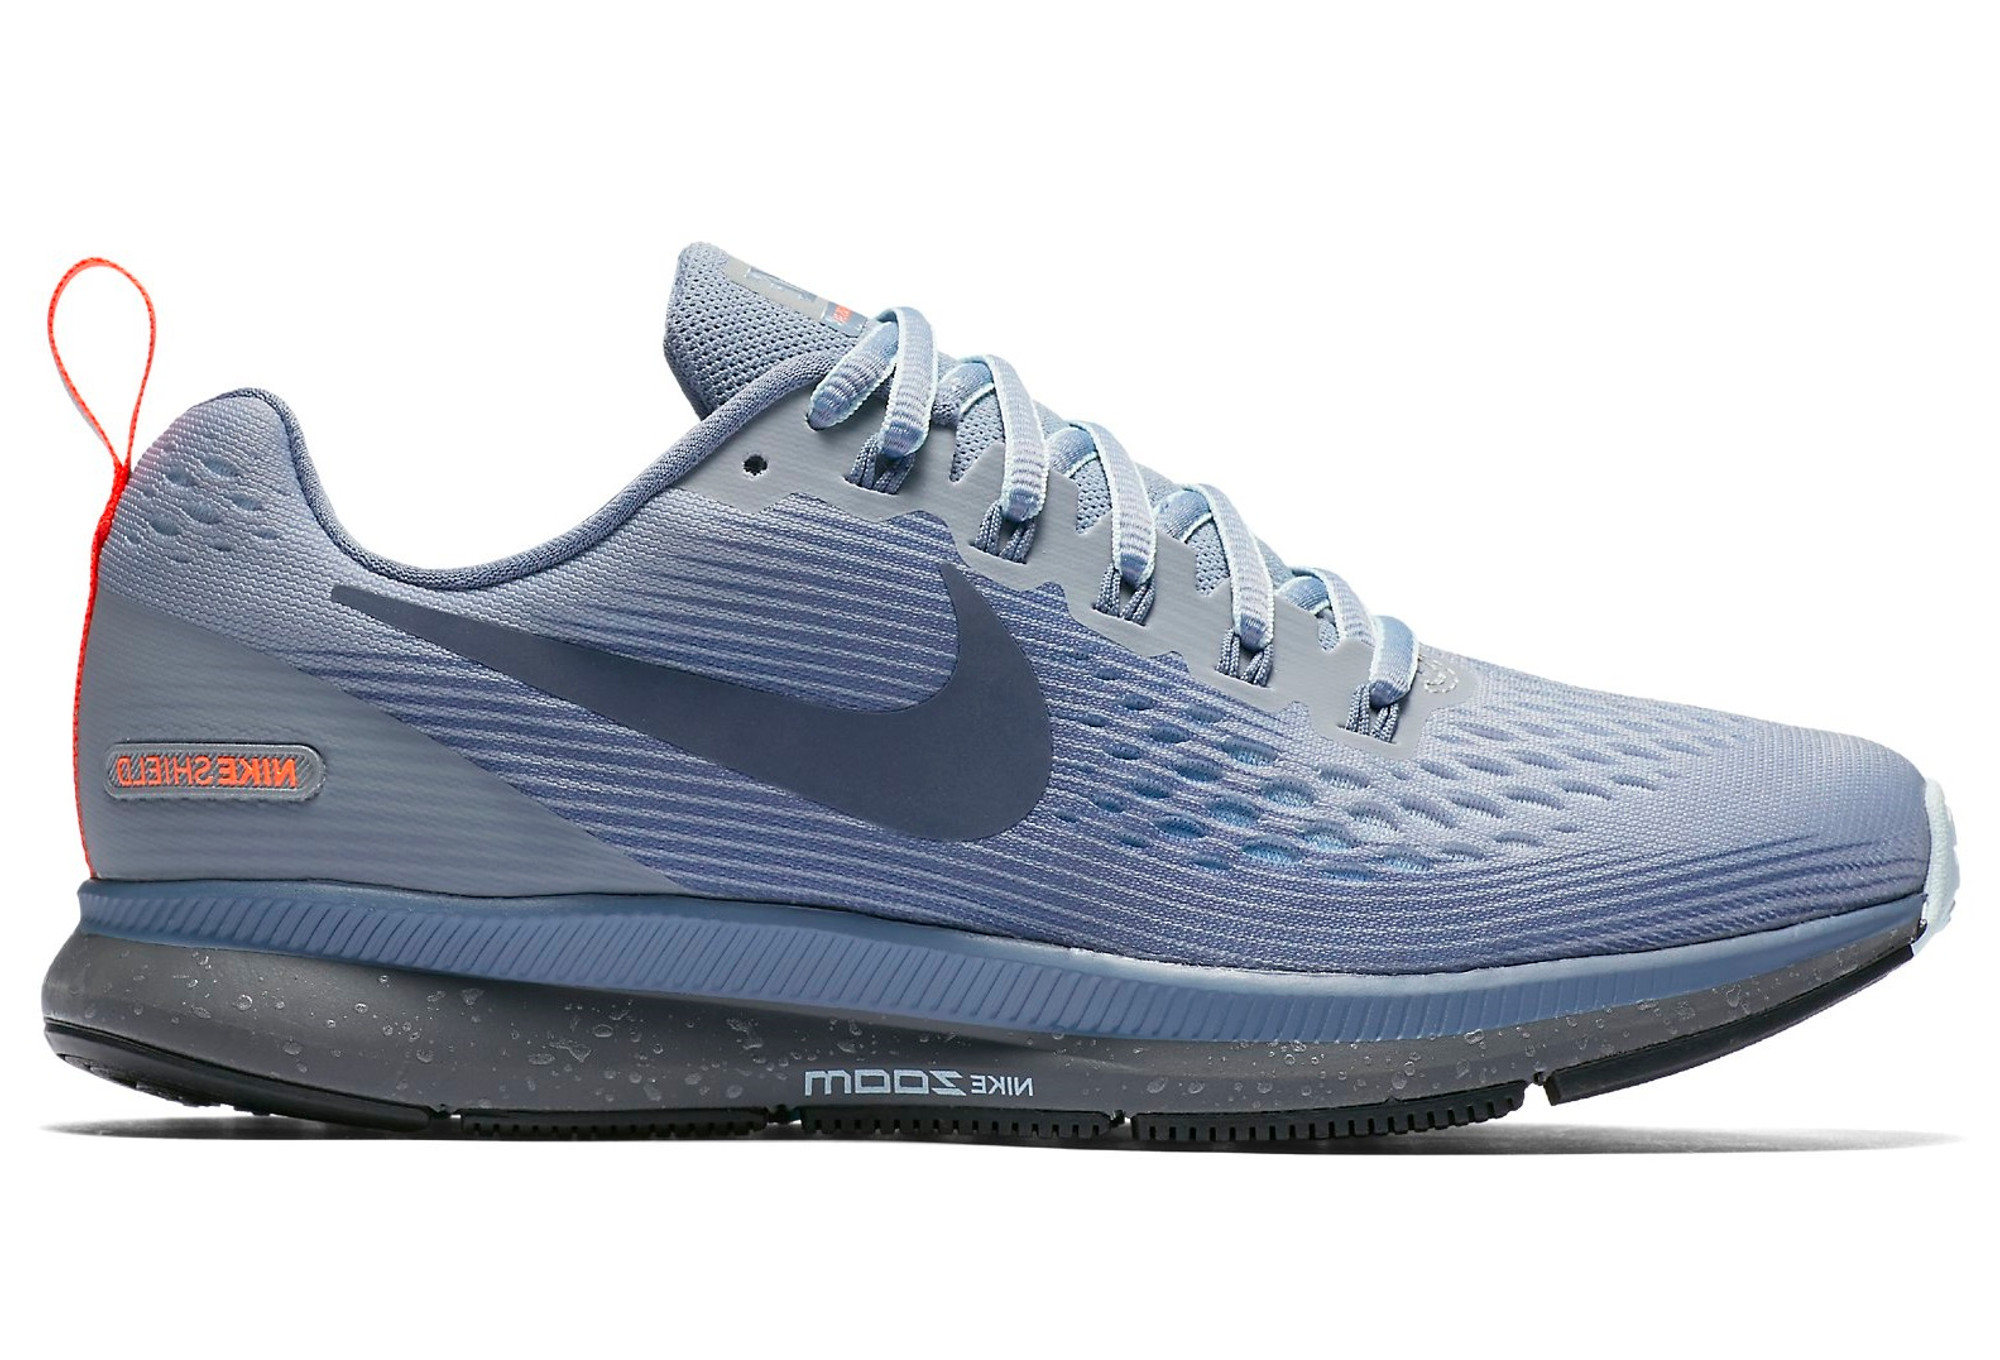 866fa81455c8 Nike Air Zoom Pegasus 34 Shield Grey Blue Women